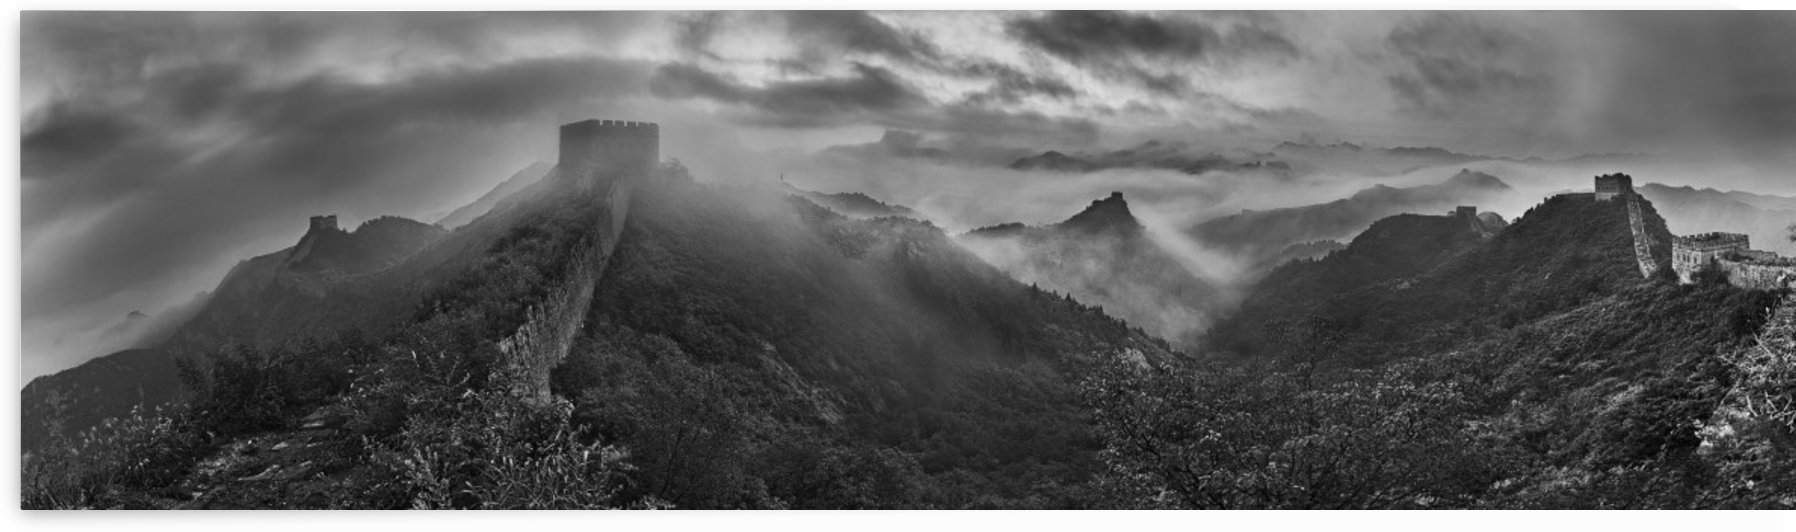 Misty Morning at Great Wall by 1x